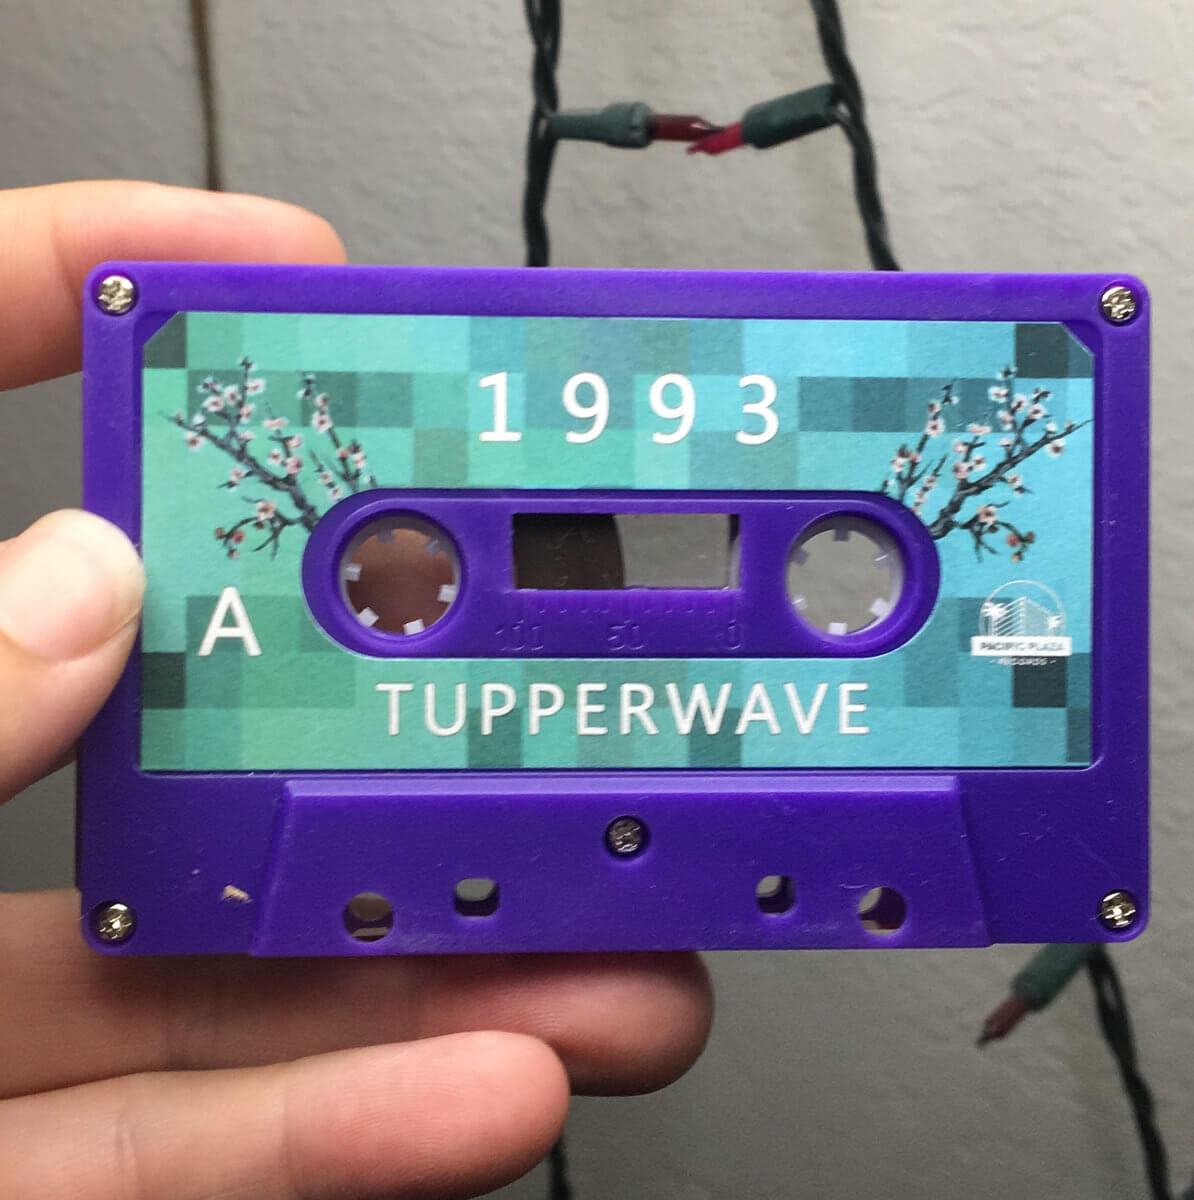 1 9 9 3 by TUPPERWAVE (Second Edition Purple Cassette) 1